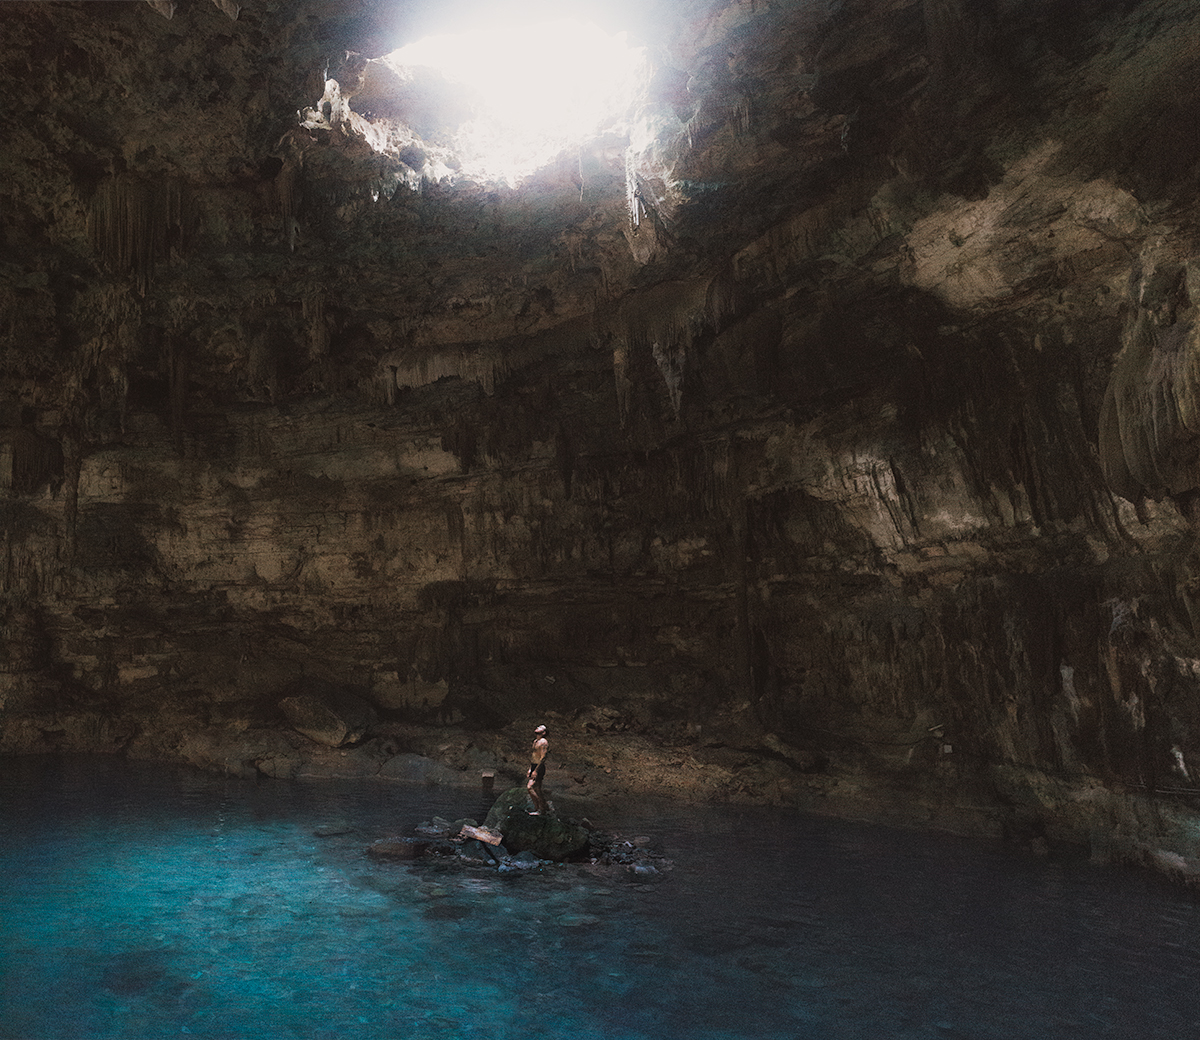 Cenote Saluum in the Yucatan Peninsula.